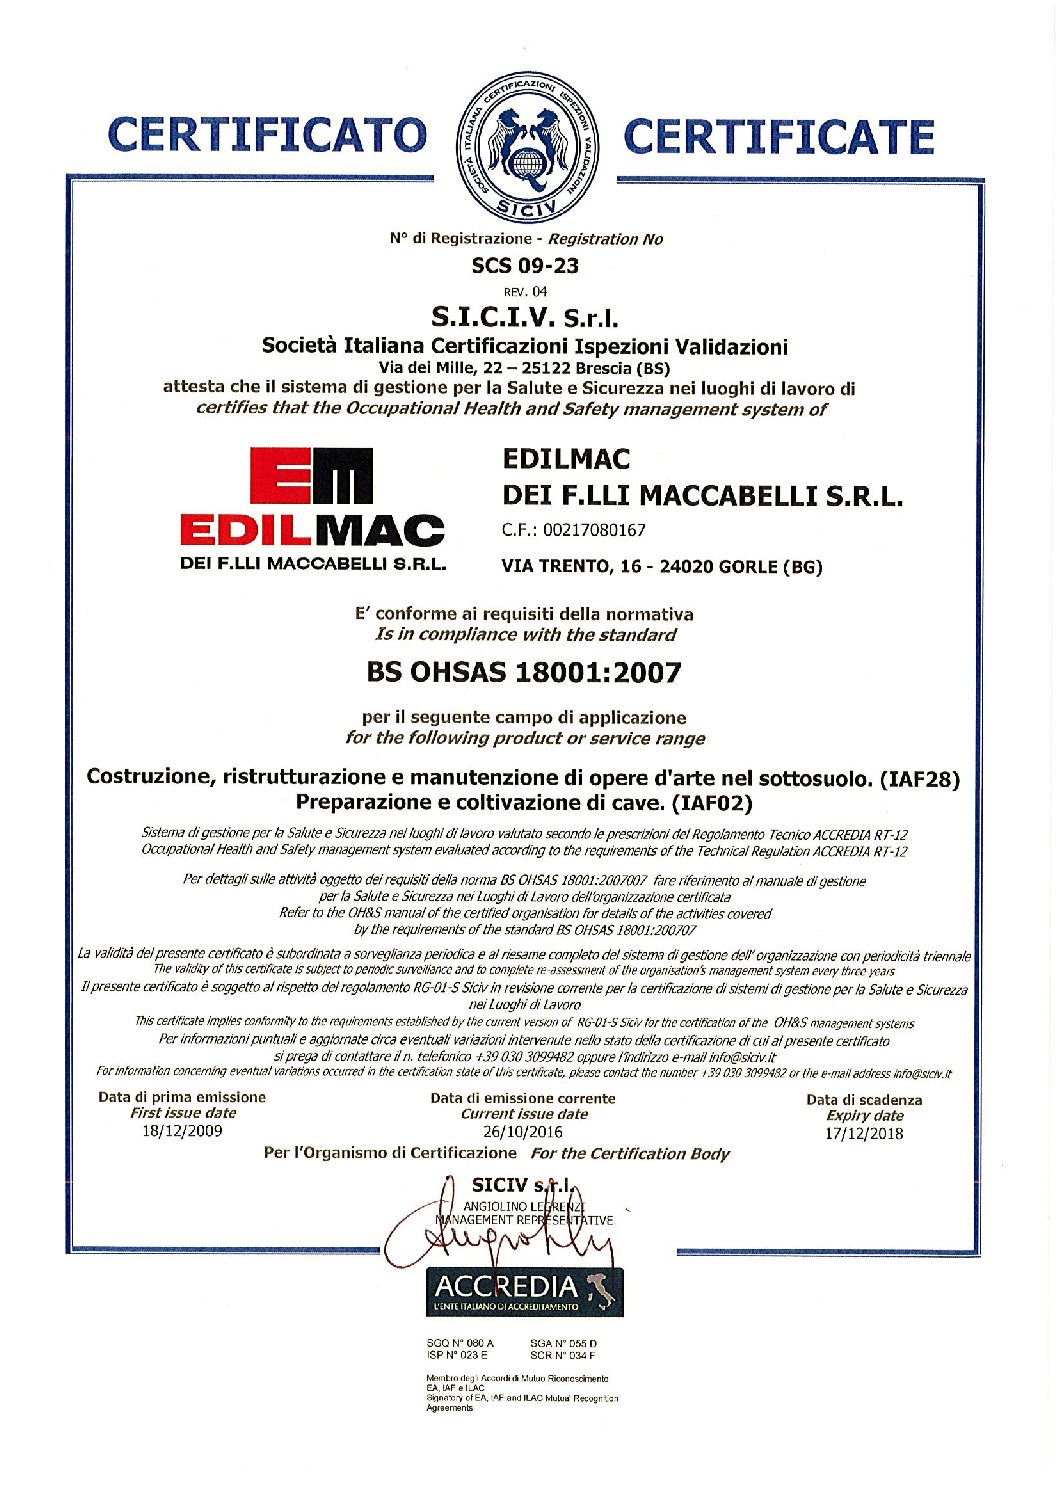 BS OHSAS 18001:2007 - Certificatión